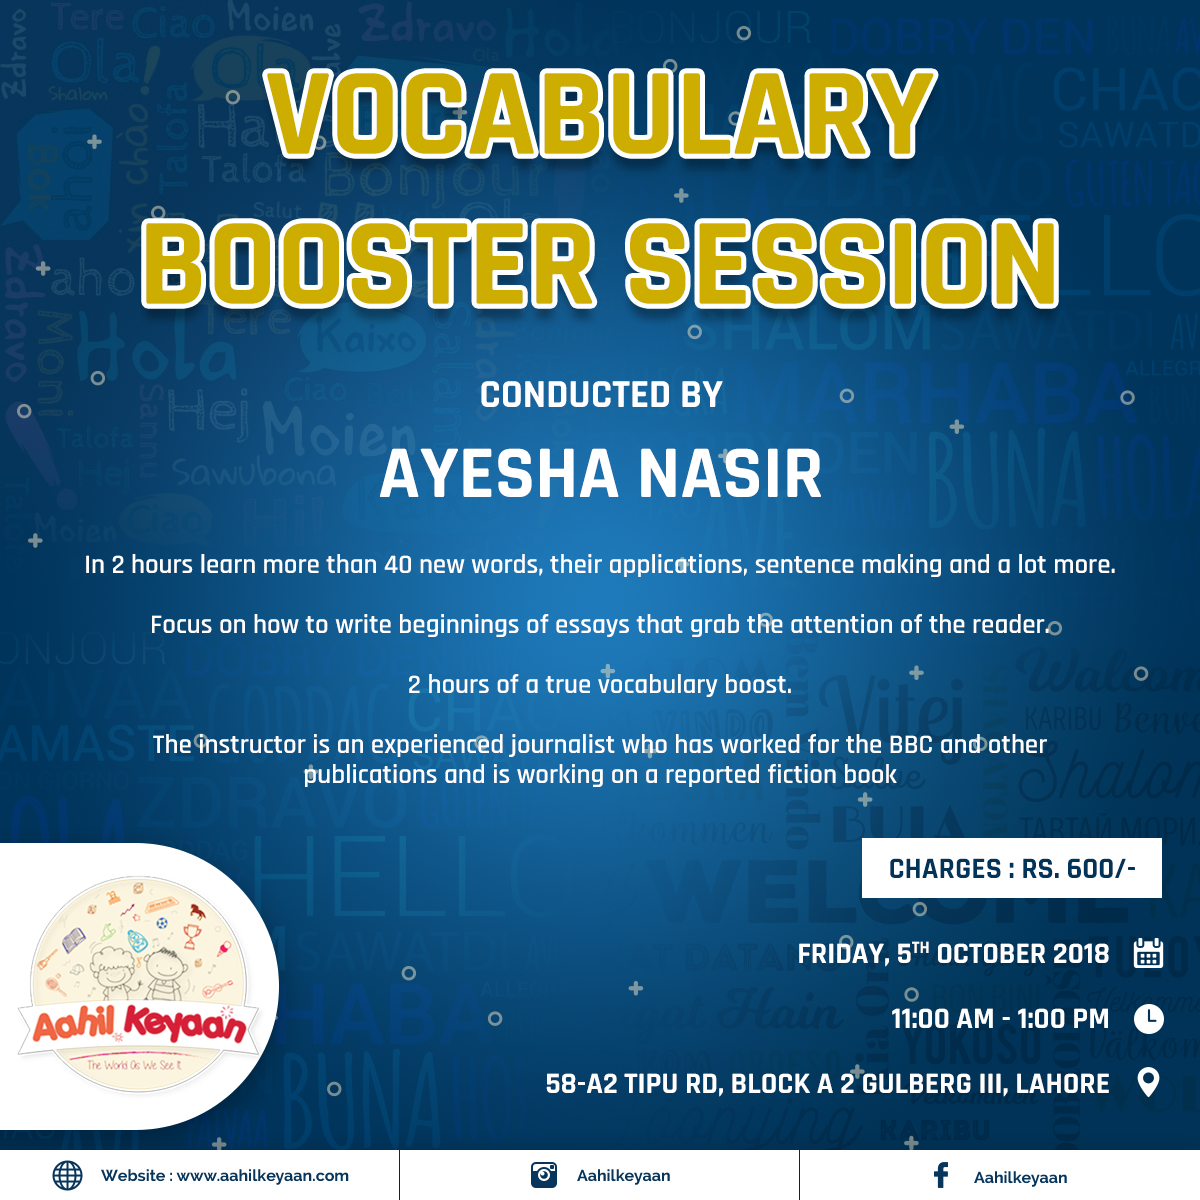 Vocabulary Booster Session Facebook Post Design